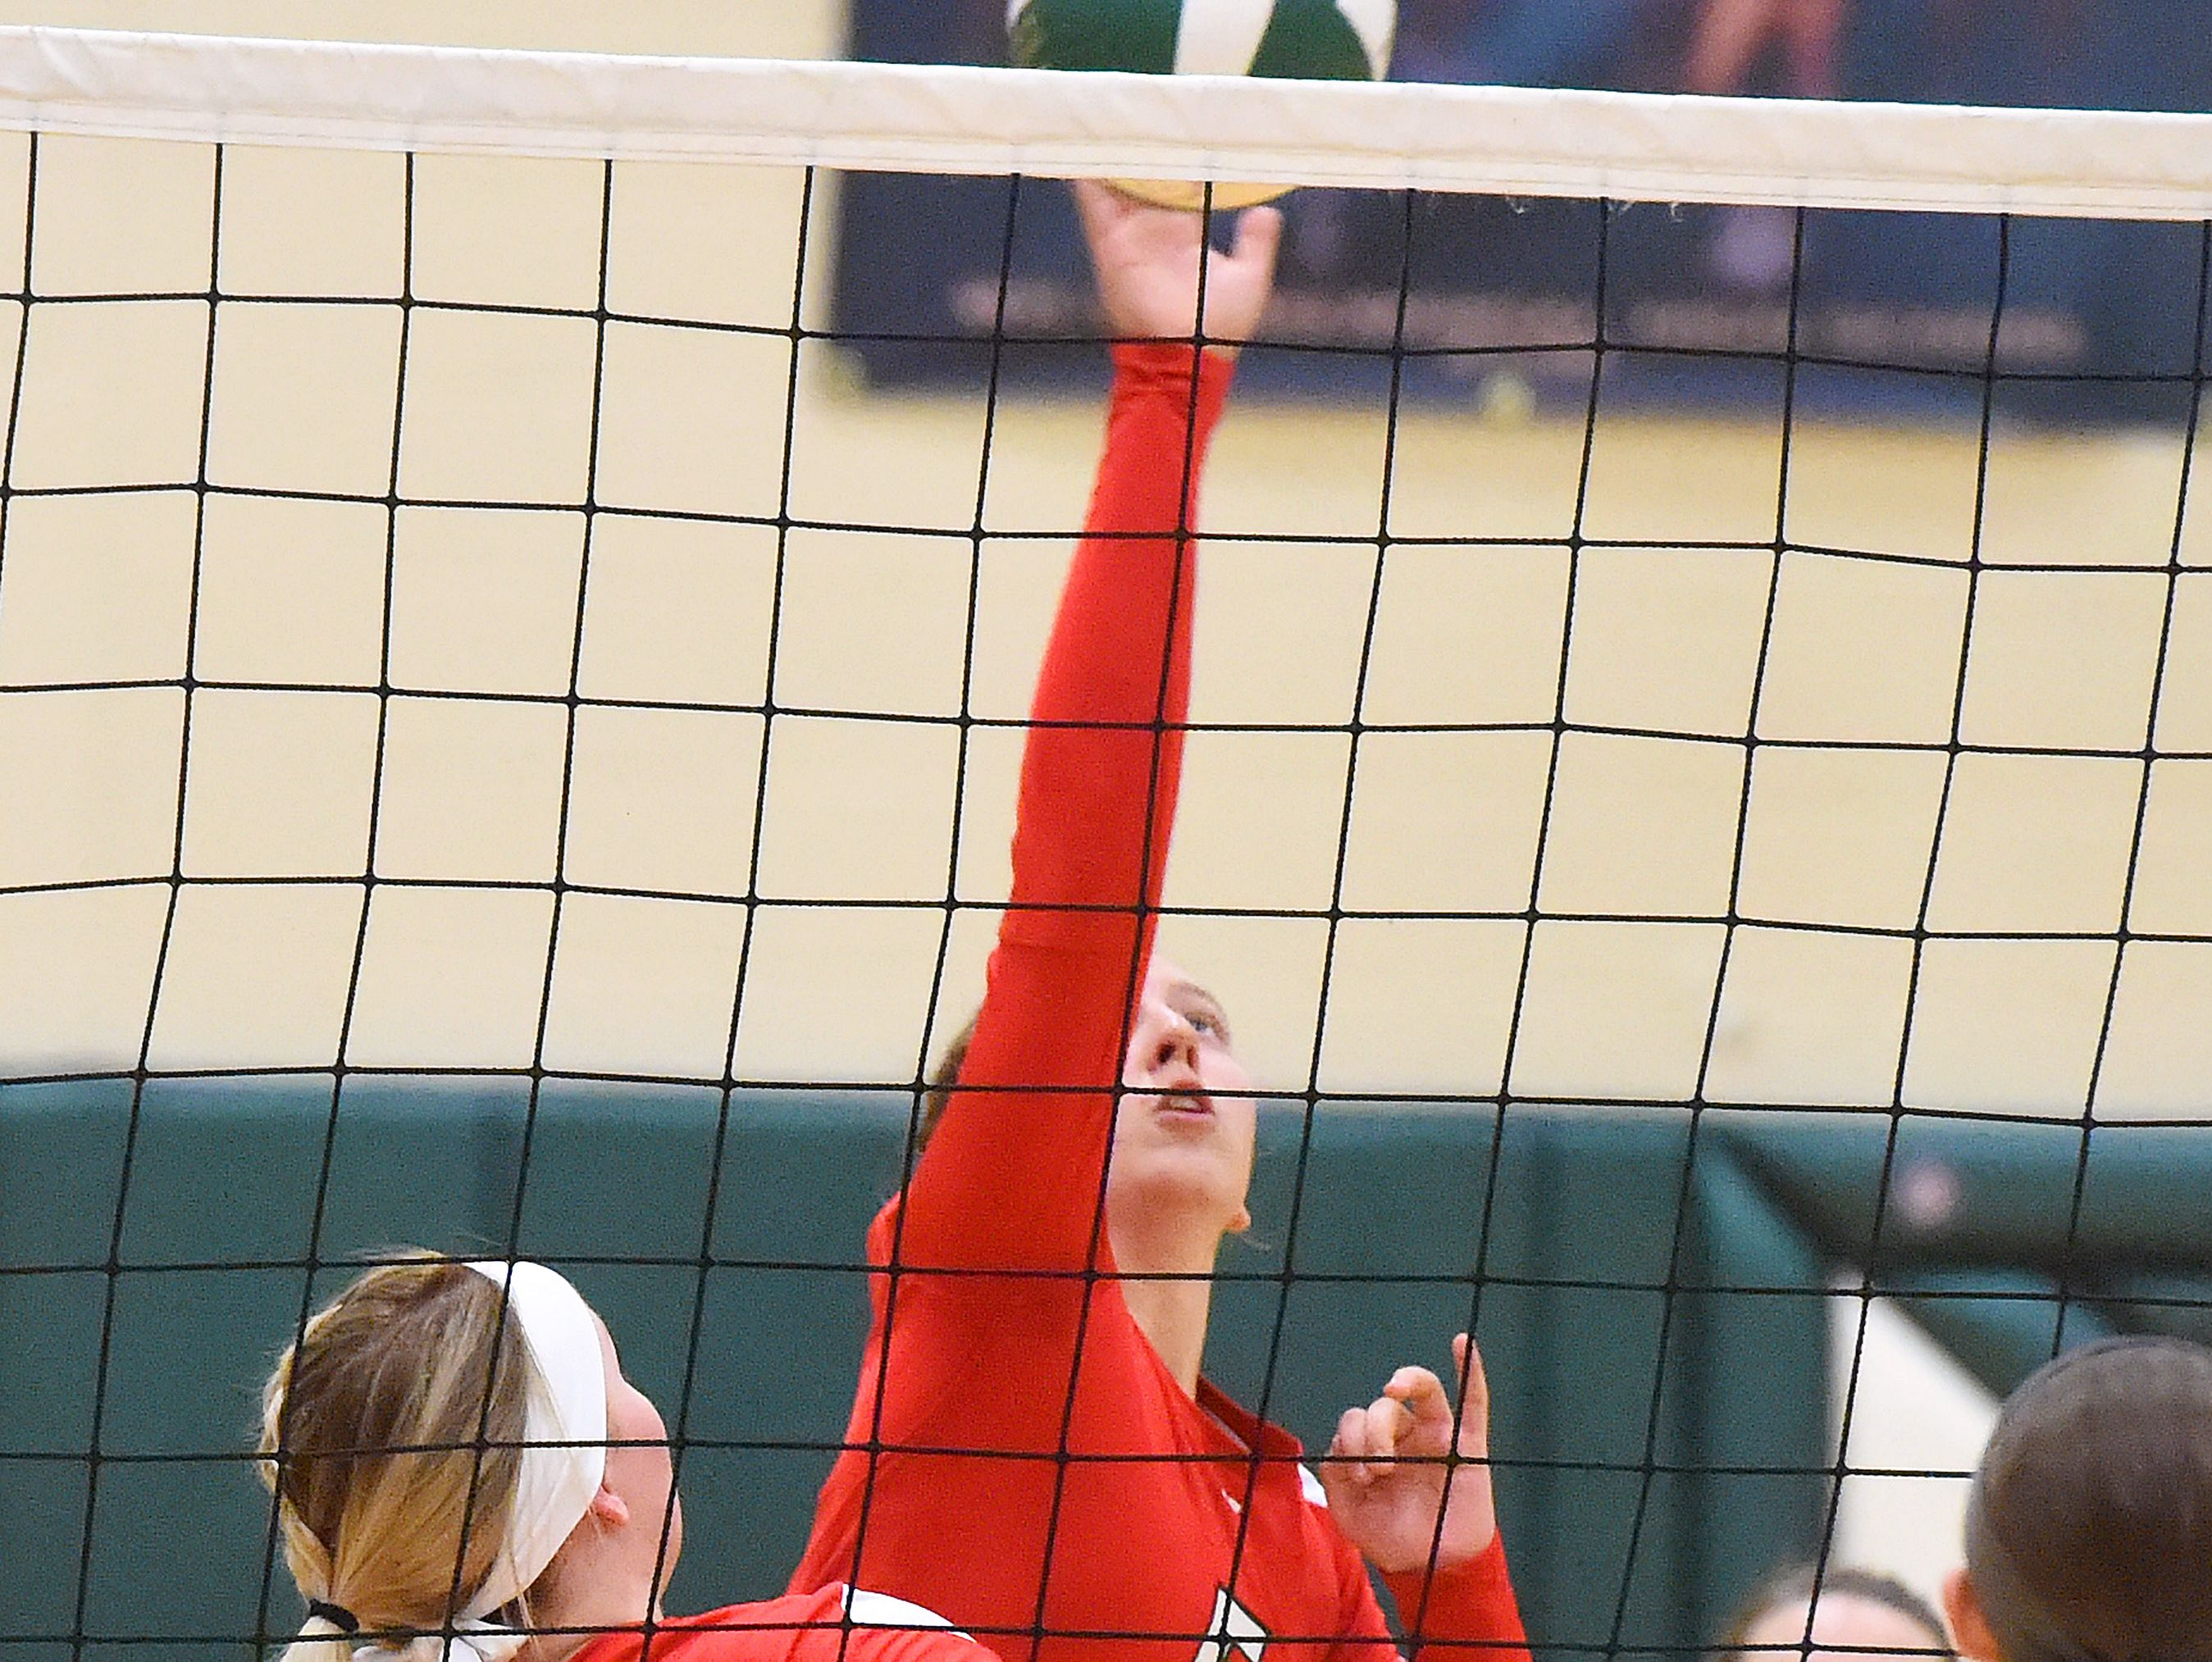 Riverheads' Jenni Miller spikes the ball during a volleyball match played in Fishersville on Thursday, Oct. 20, 2016.